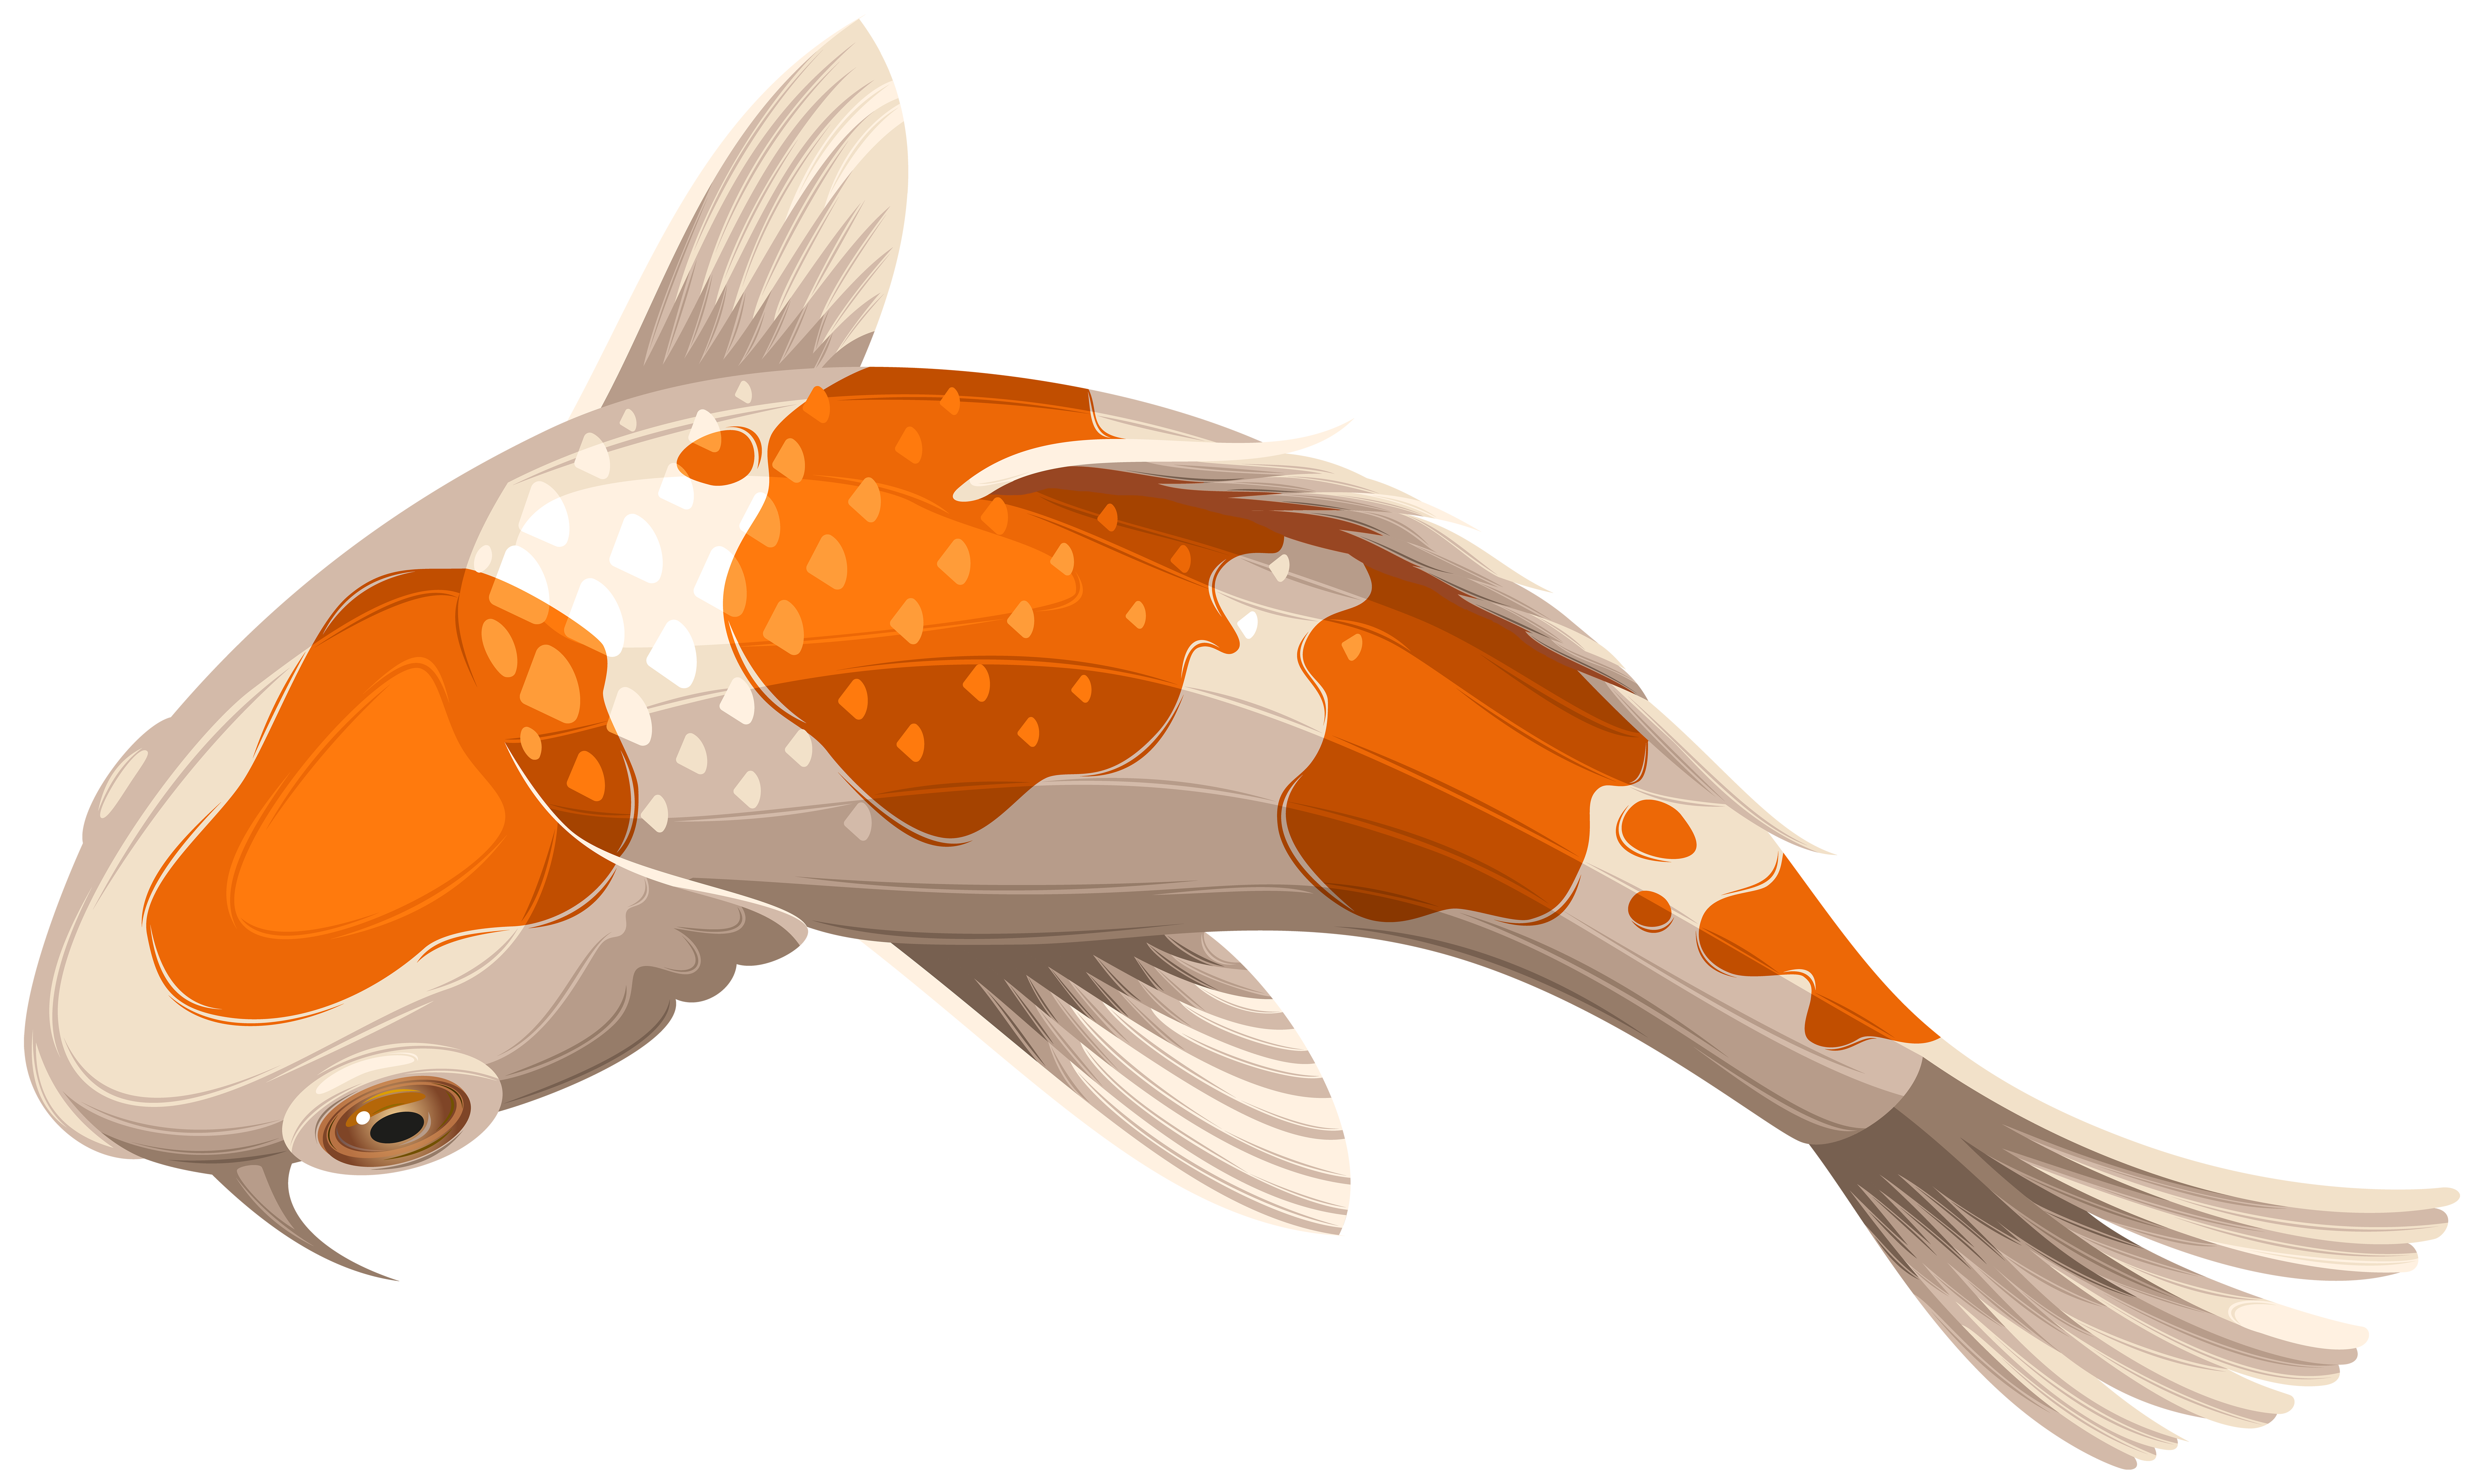 Pond fish clipart vector transparent download Koi Showa Goldfish Clip art - White and Orange Koi Fish Transparent ... vector transparent download